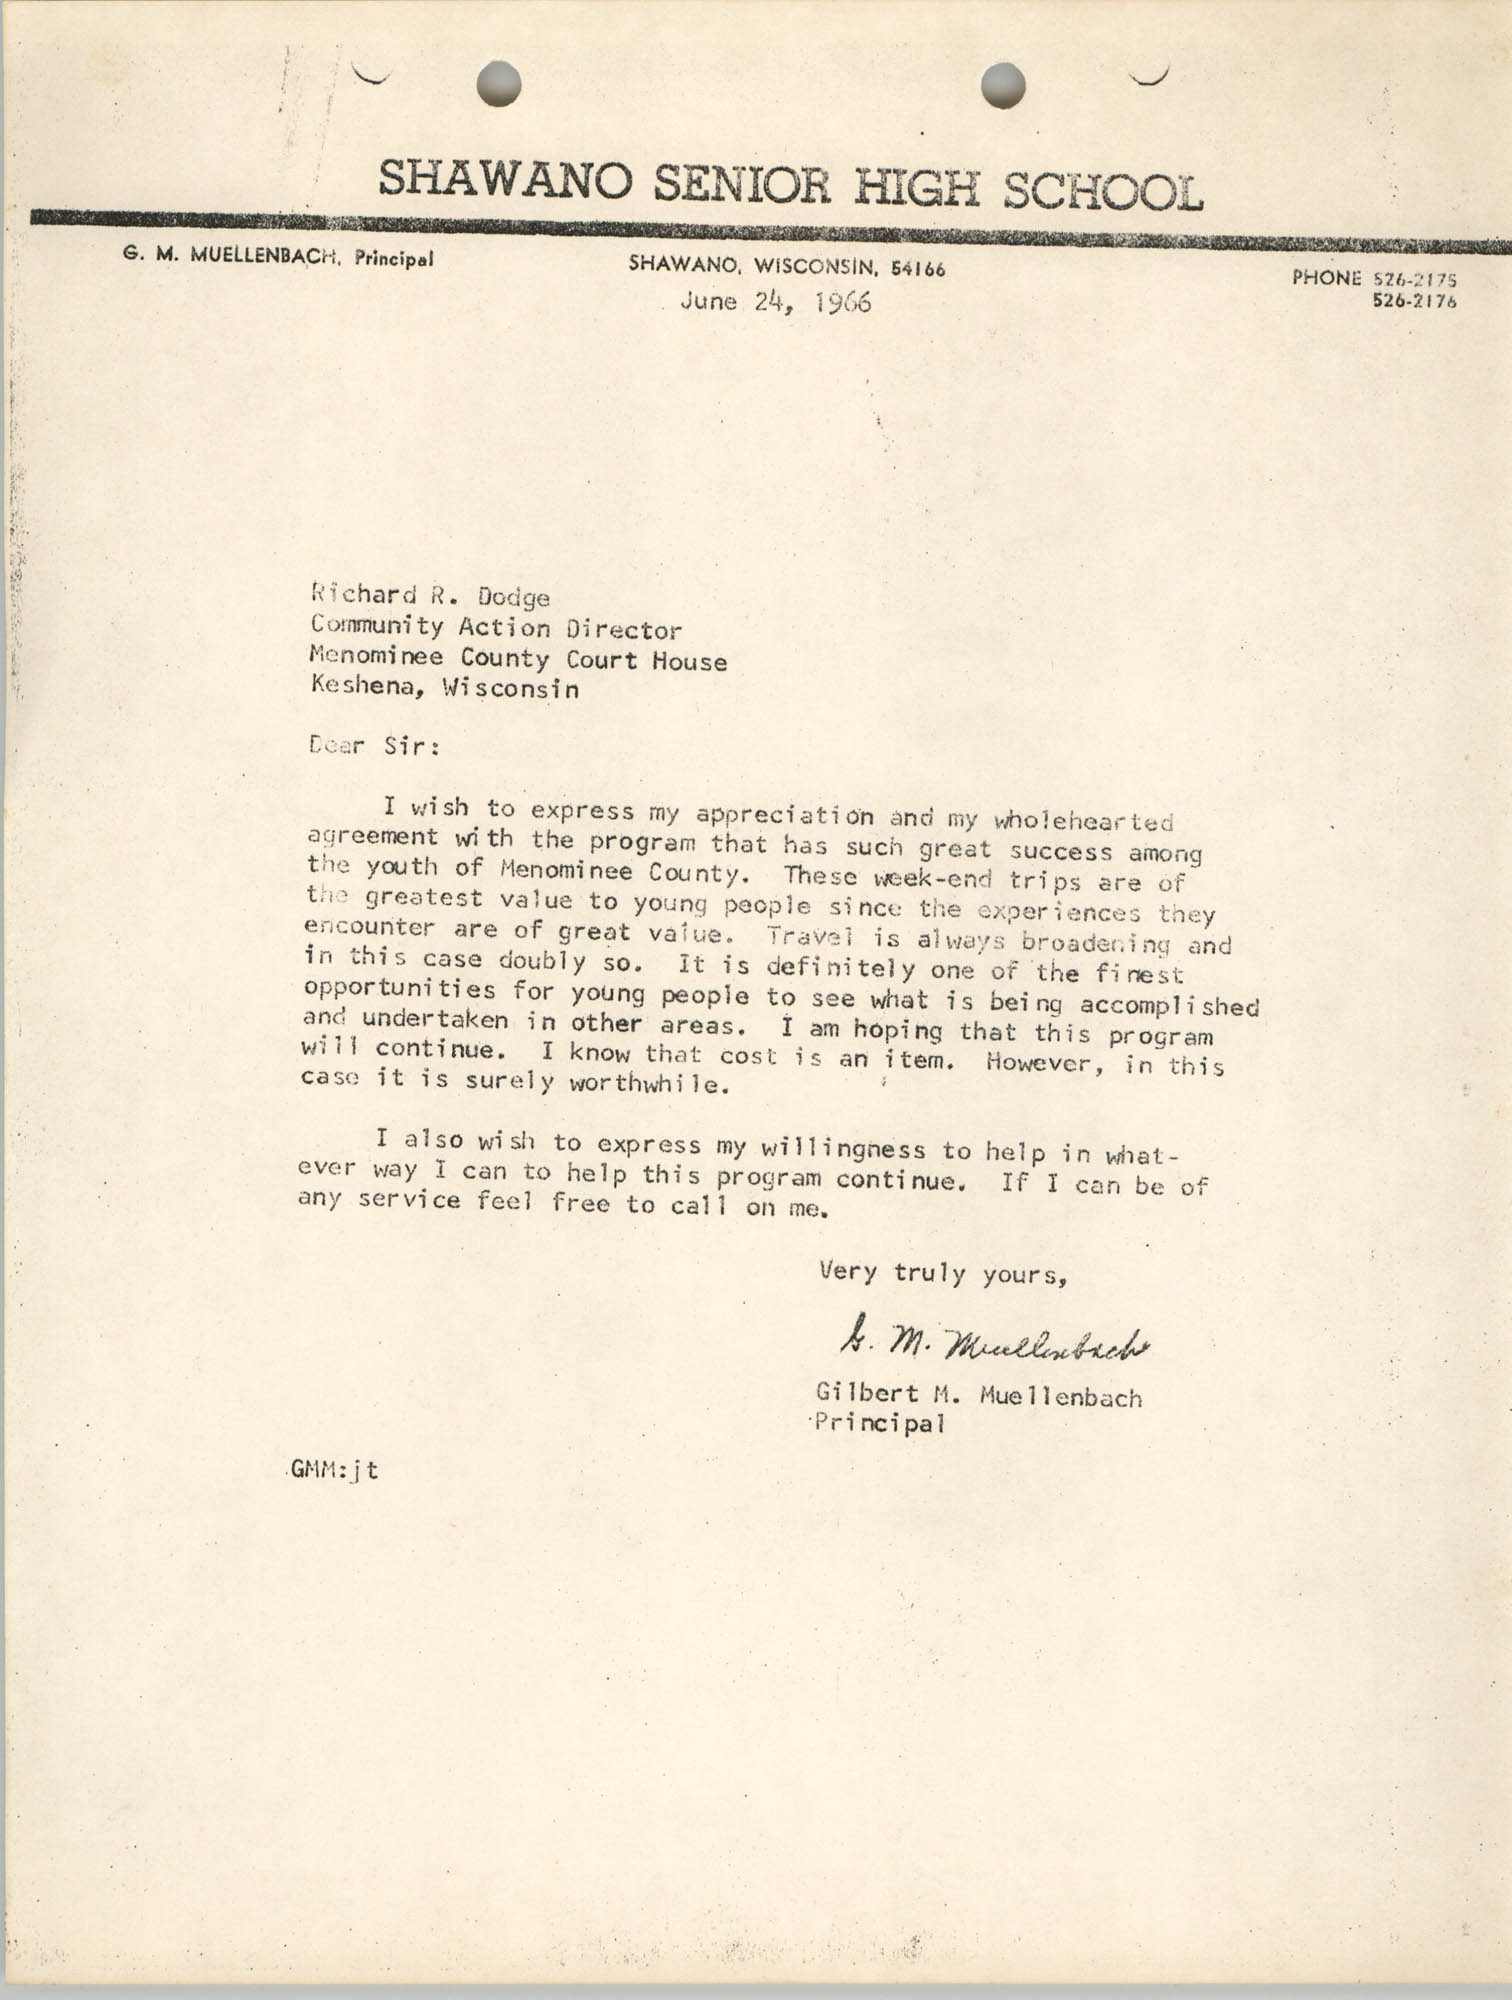 Letter from Gilbert Muellenbach to Richard Dodge, June 24, 1966